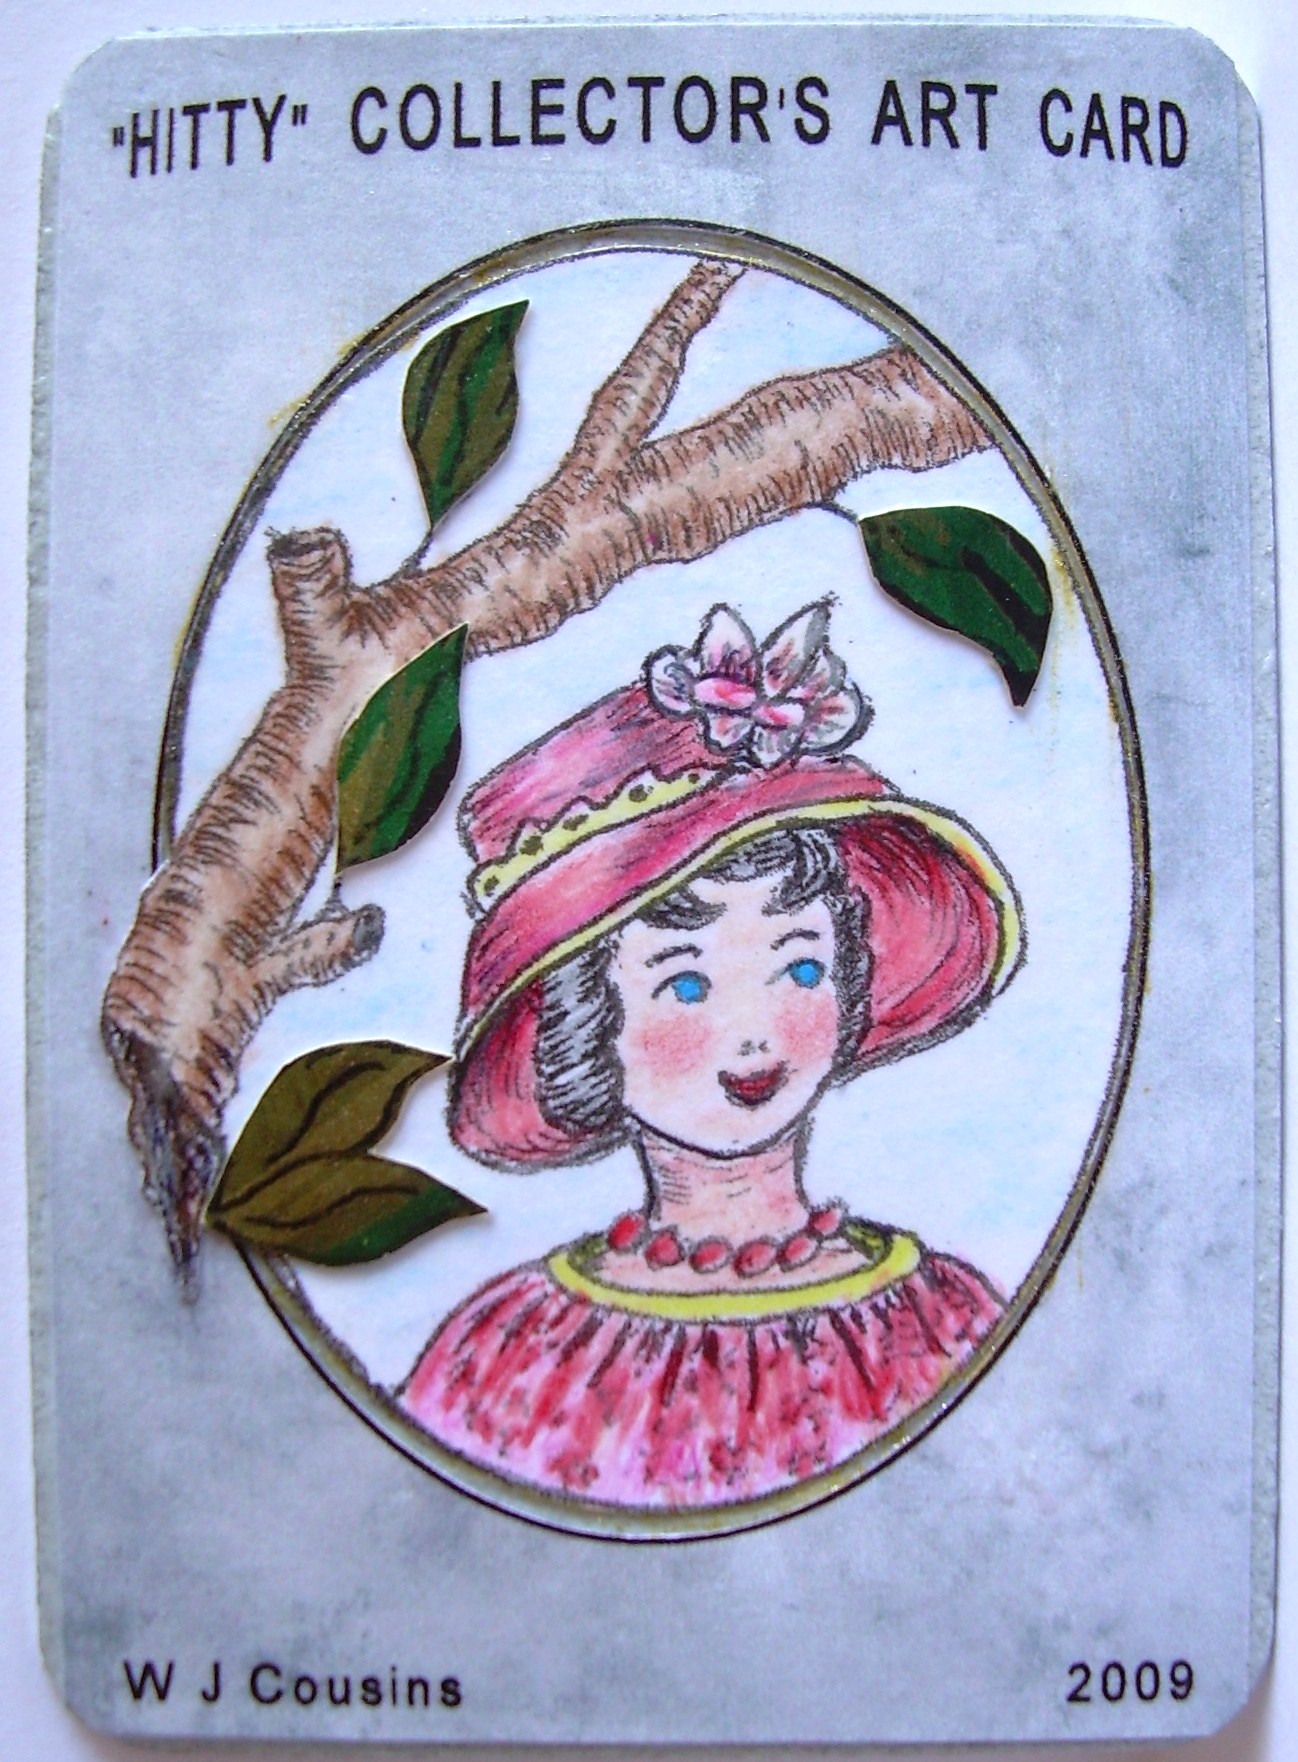 #2, &quot;In Which I Visit A Magnolia&quot;, ORIGINAL $10.00 ship $1., PRINT $5. ship $1.